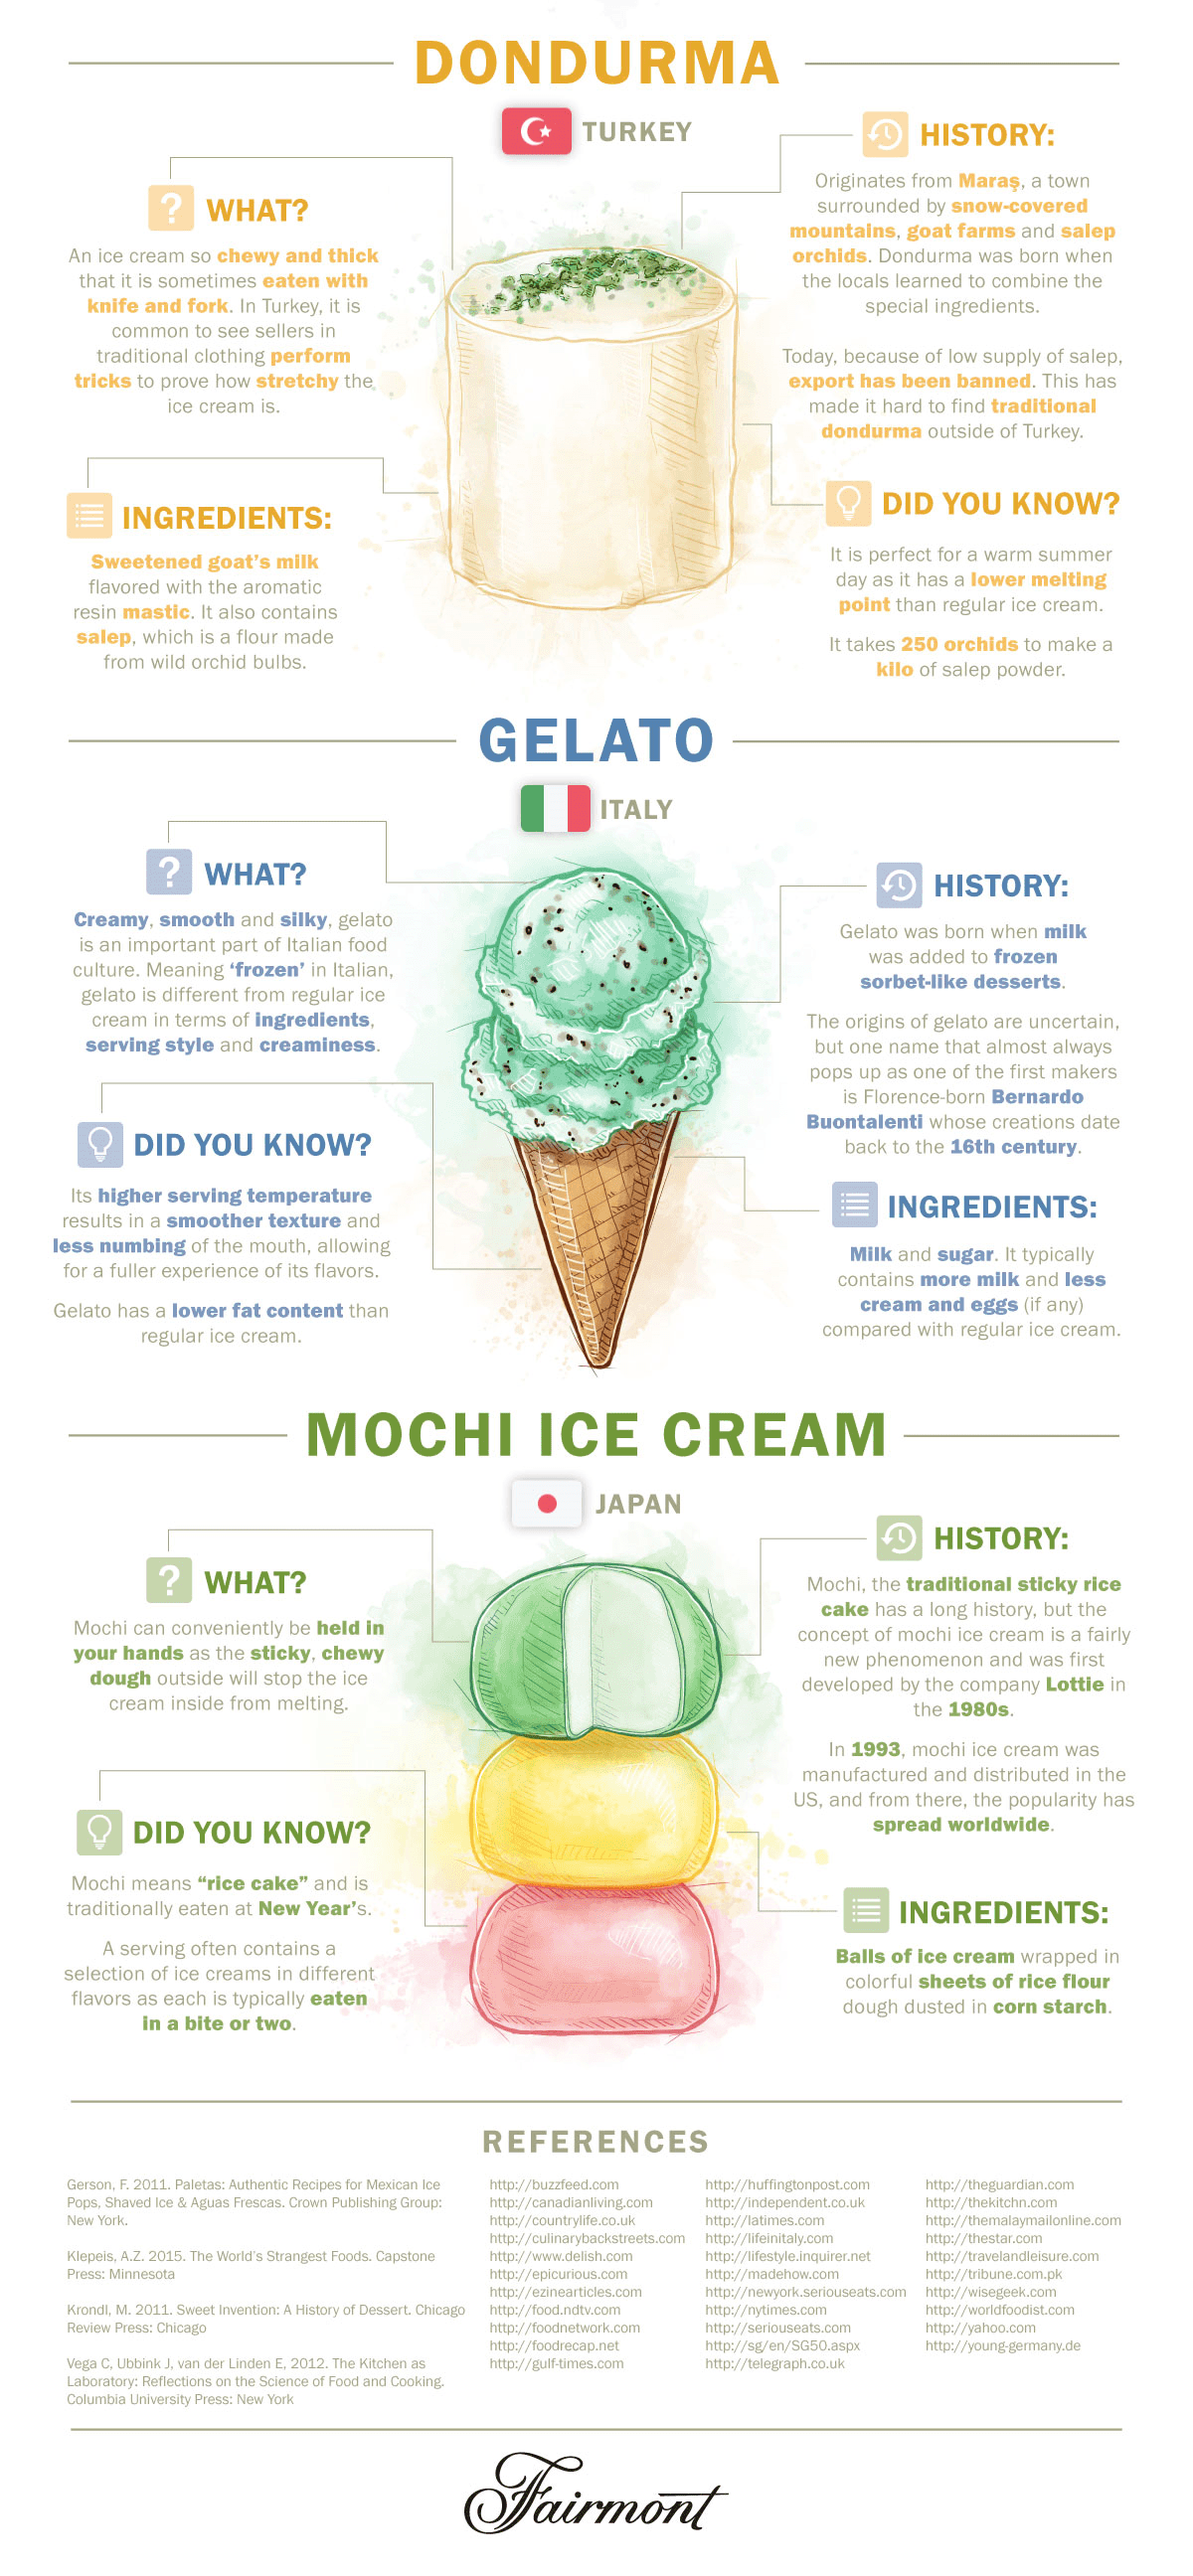 http://www.fairmont.com/infographics/most-popular-ice-cream/img/Ice_creams_3.png